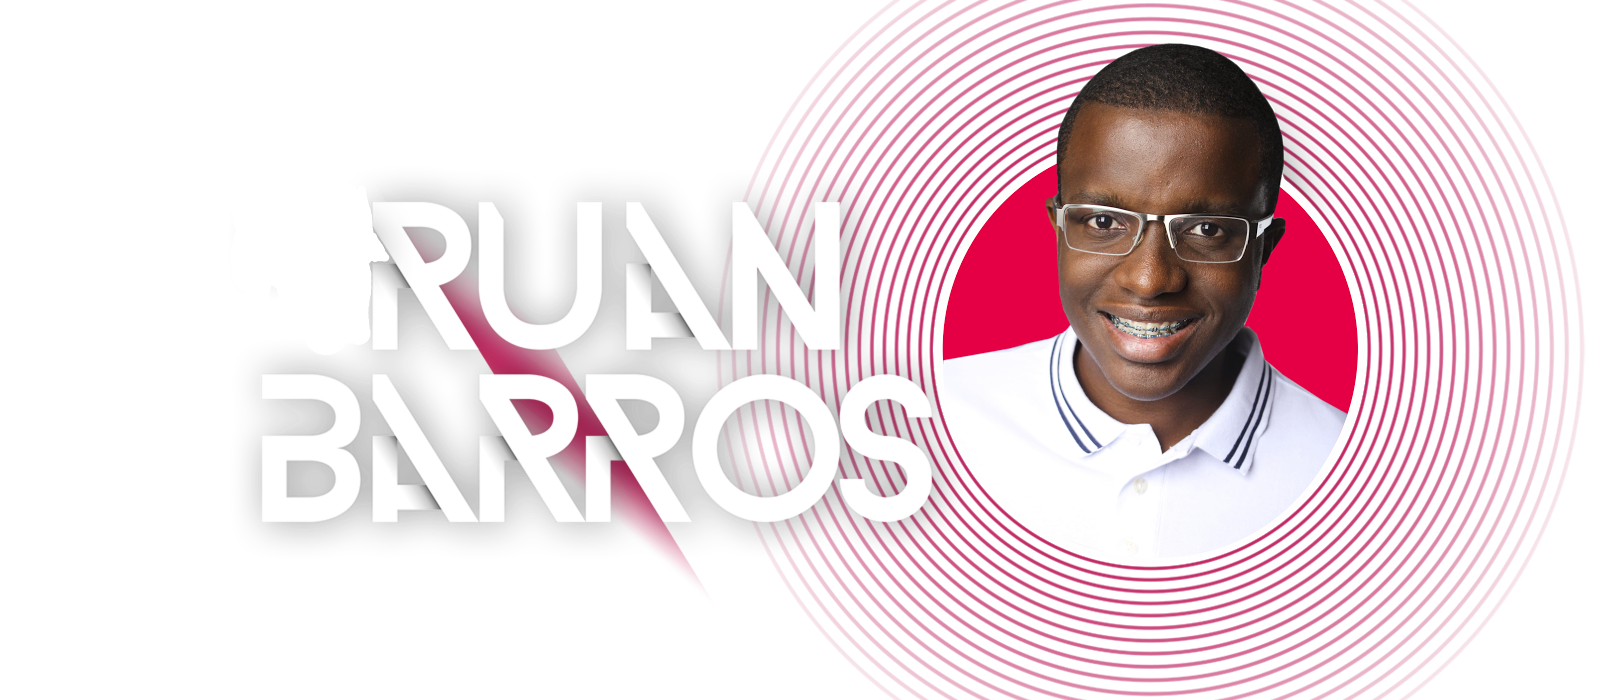 RUAN BARROS